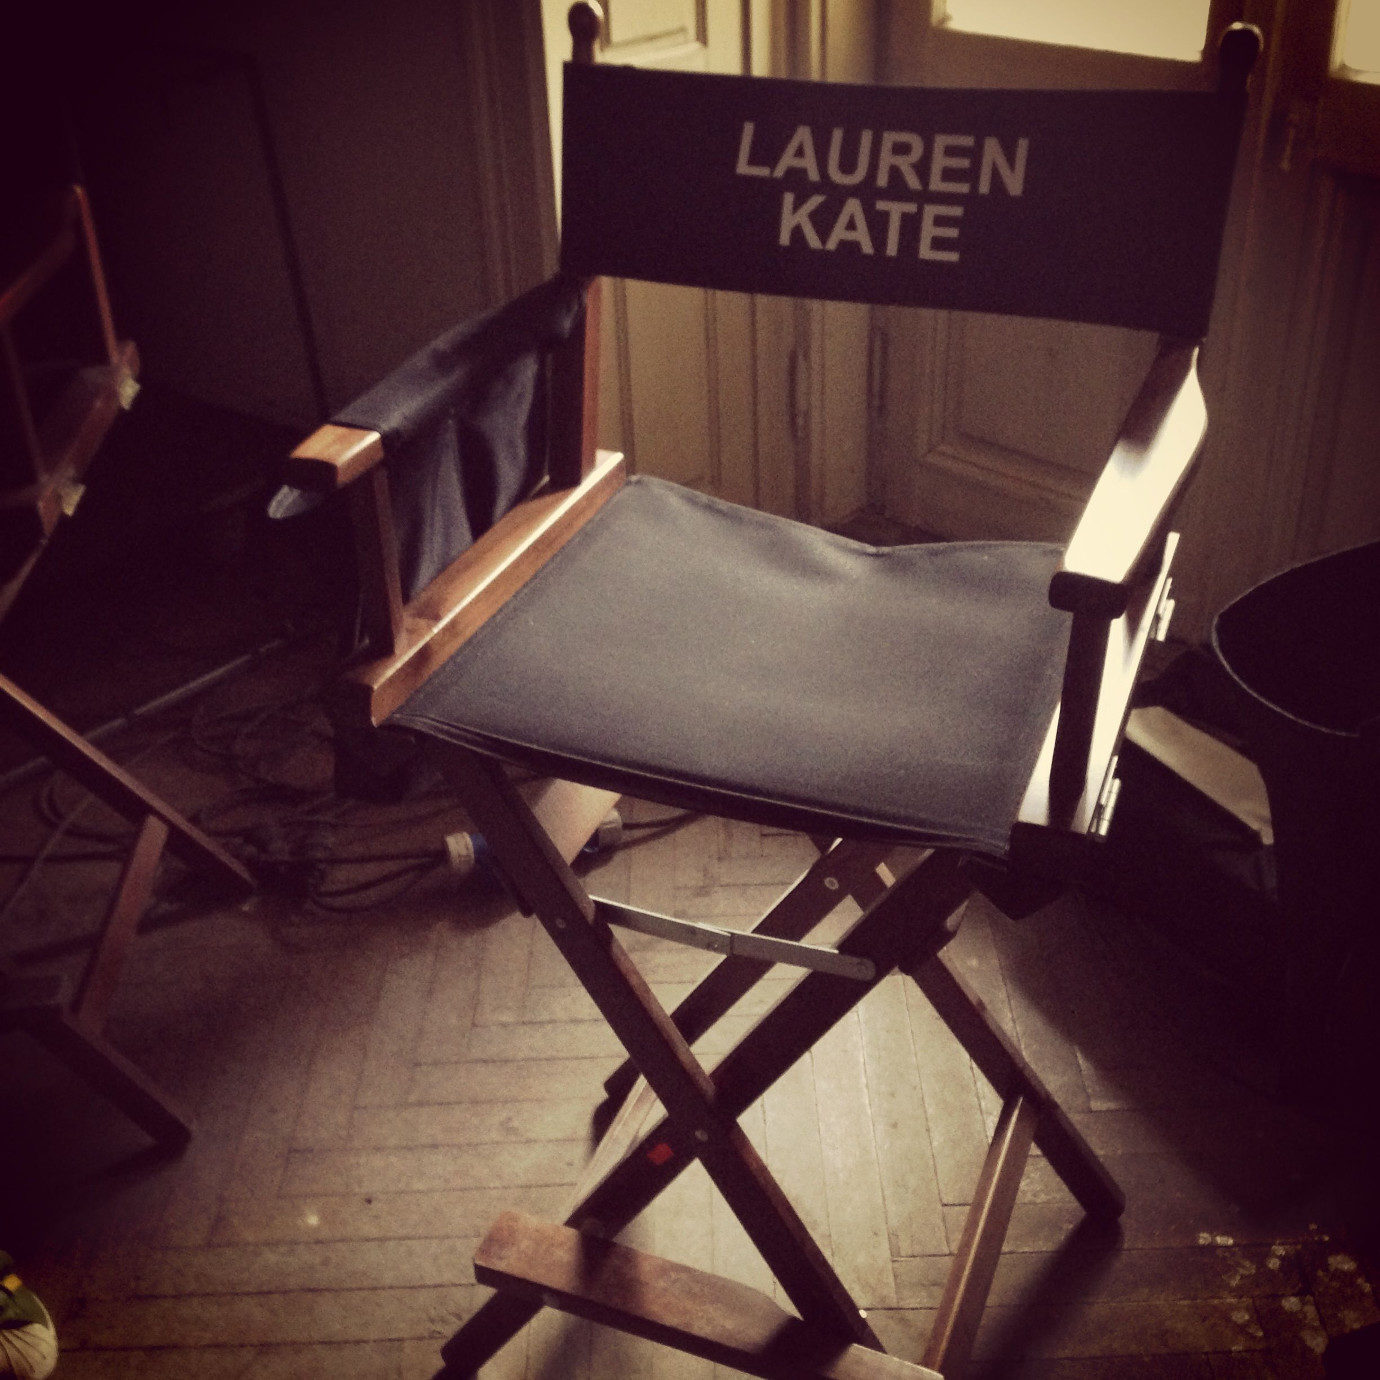 Yes, I brought my director's chair home and totally have it displayed in my house.